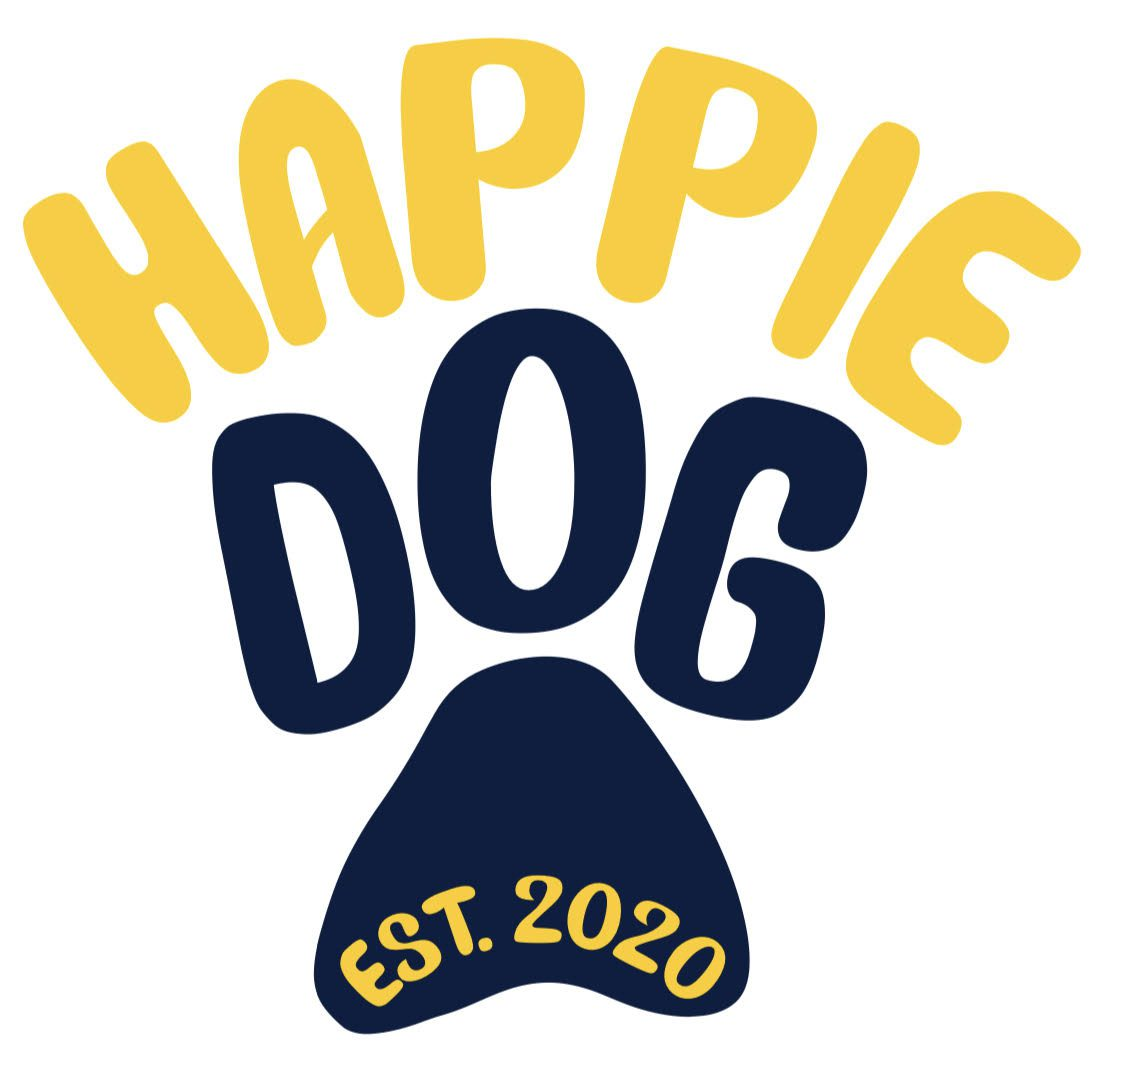 happie dog t-shirts